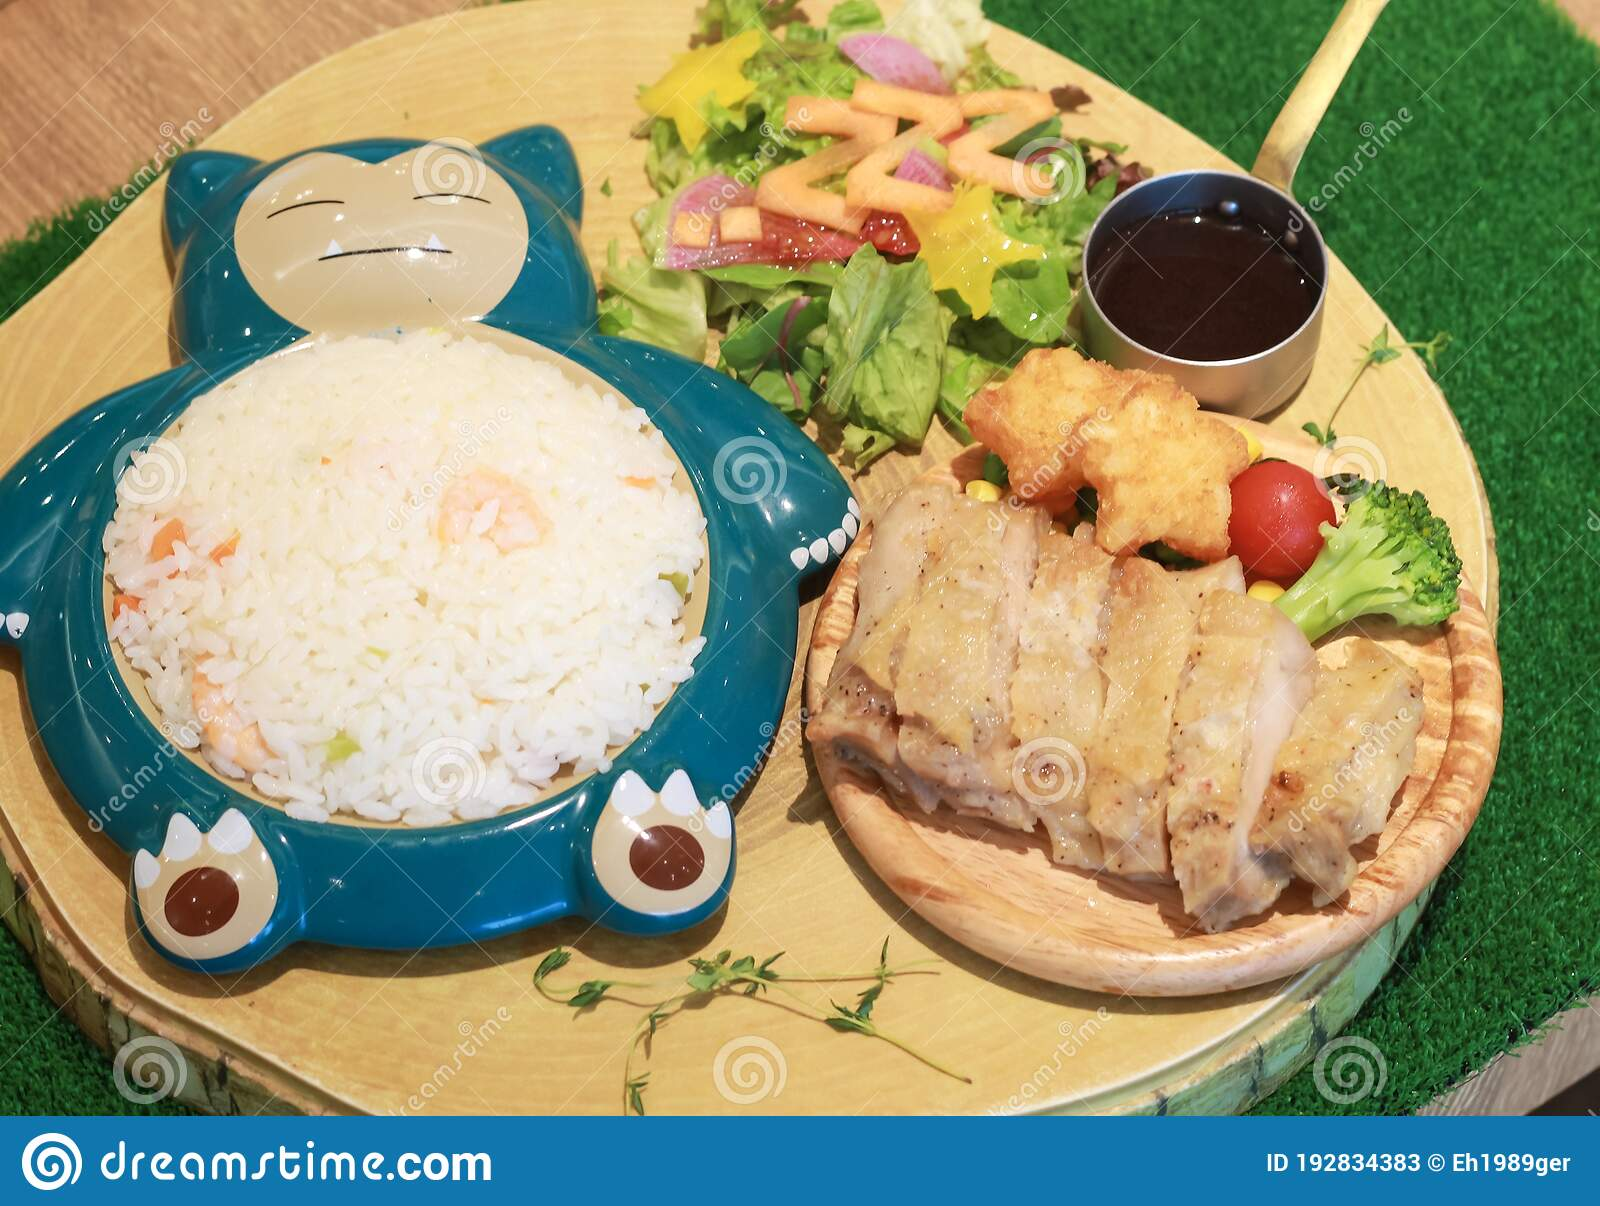 Food At The Pokemon Cafe In Nihonbashi Rice On A Plate Shaped Like The Character Snorlax Salad And Chicken Editorial Stock Photo Image Of Freak Game 192834383